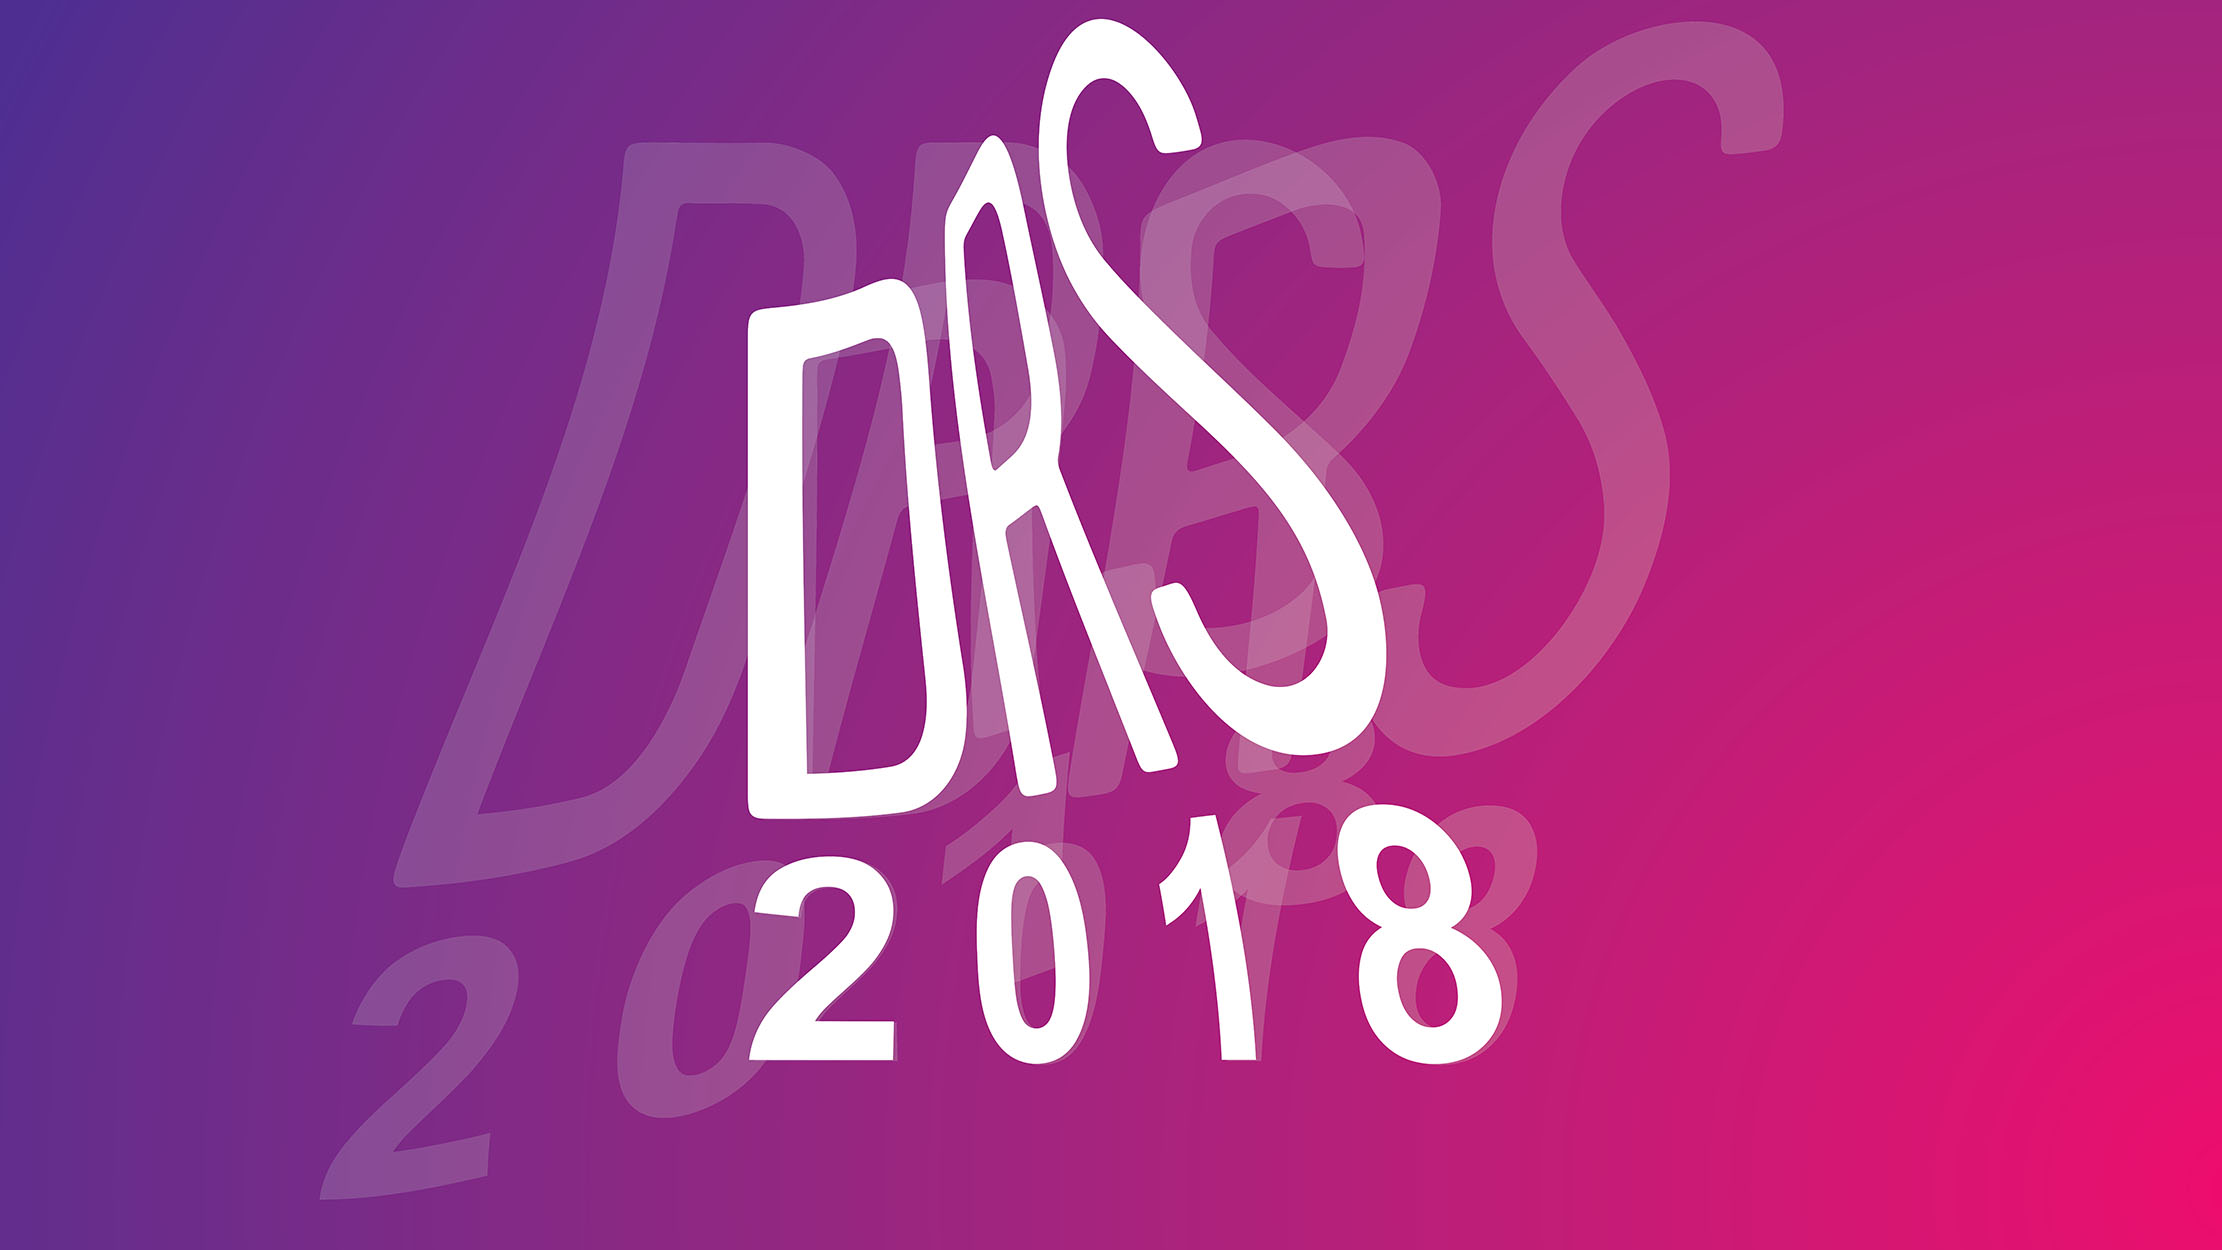 drs 2018 conference visual identity